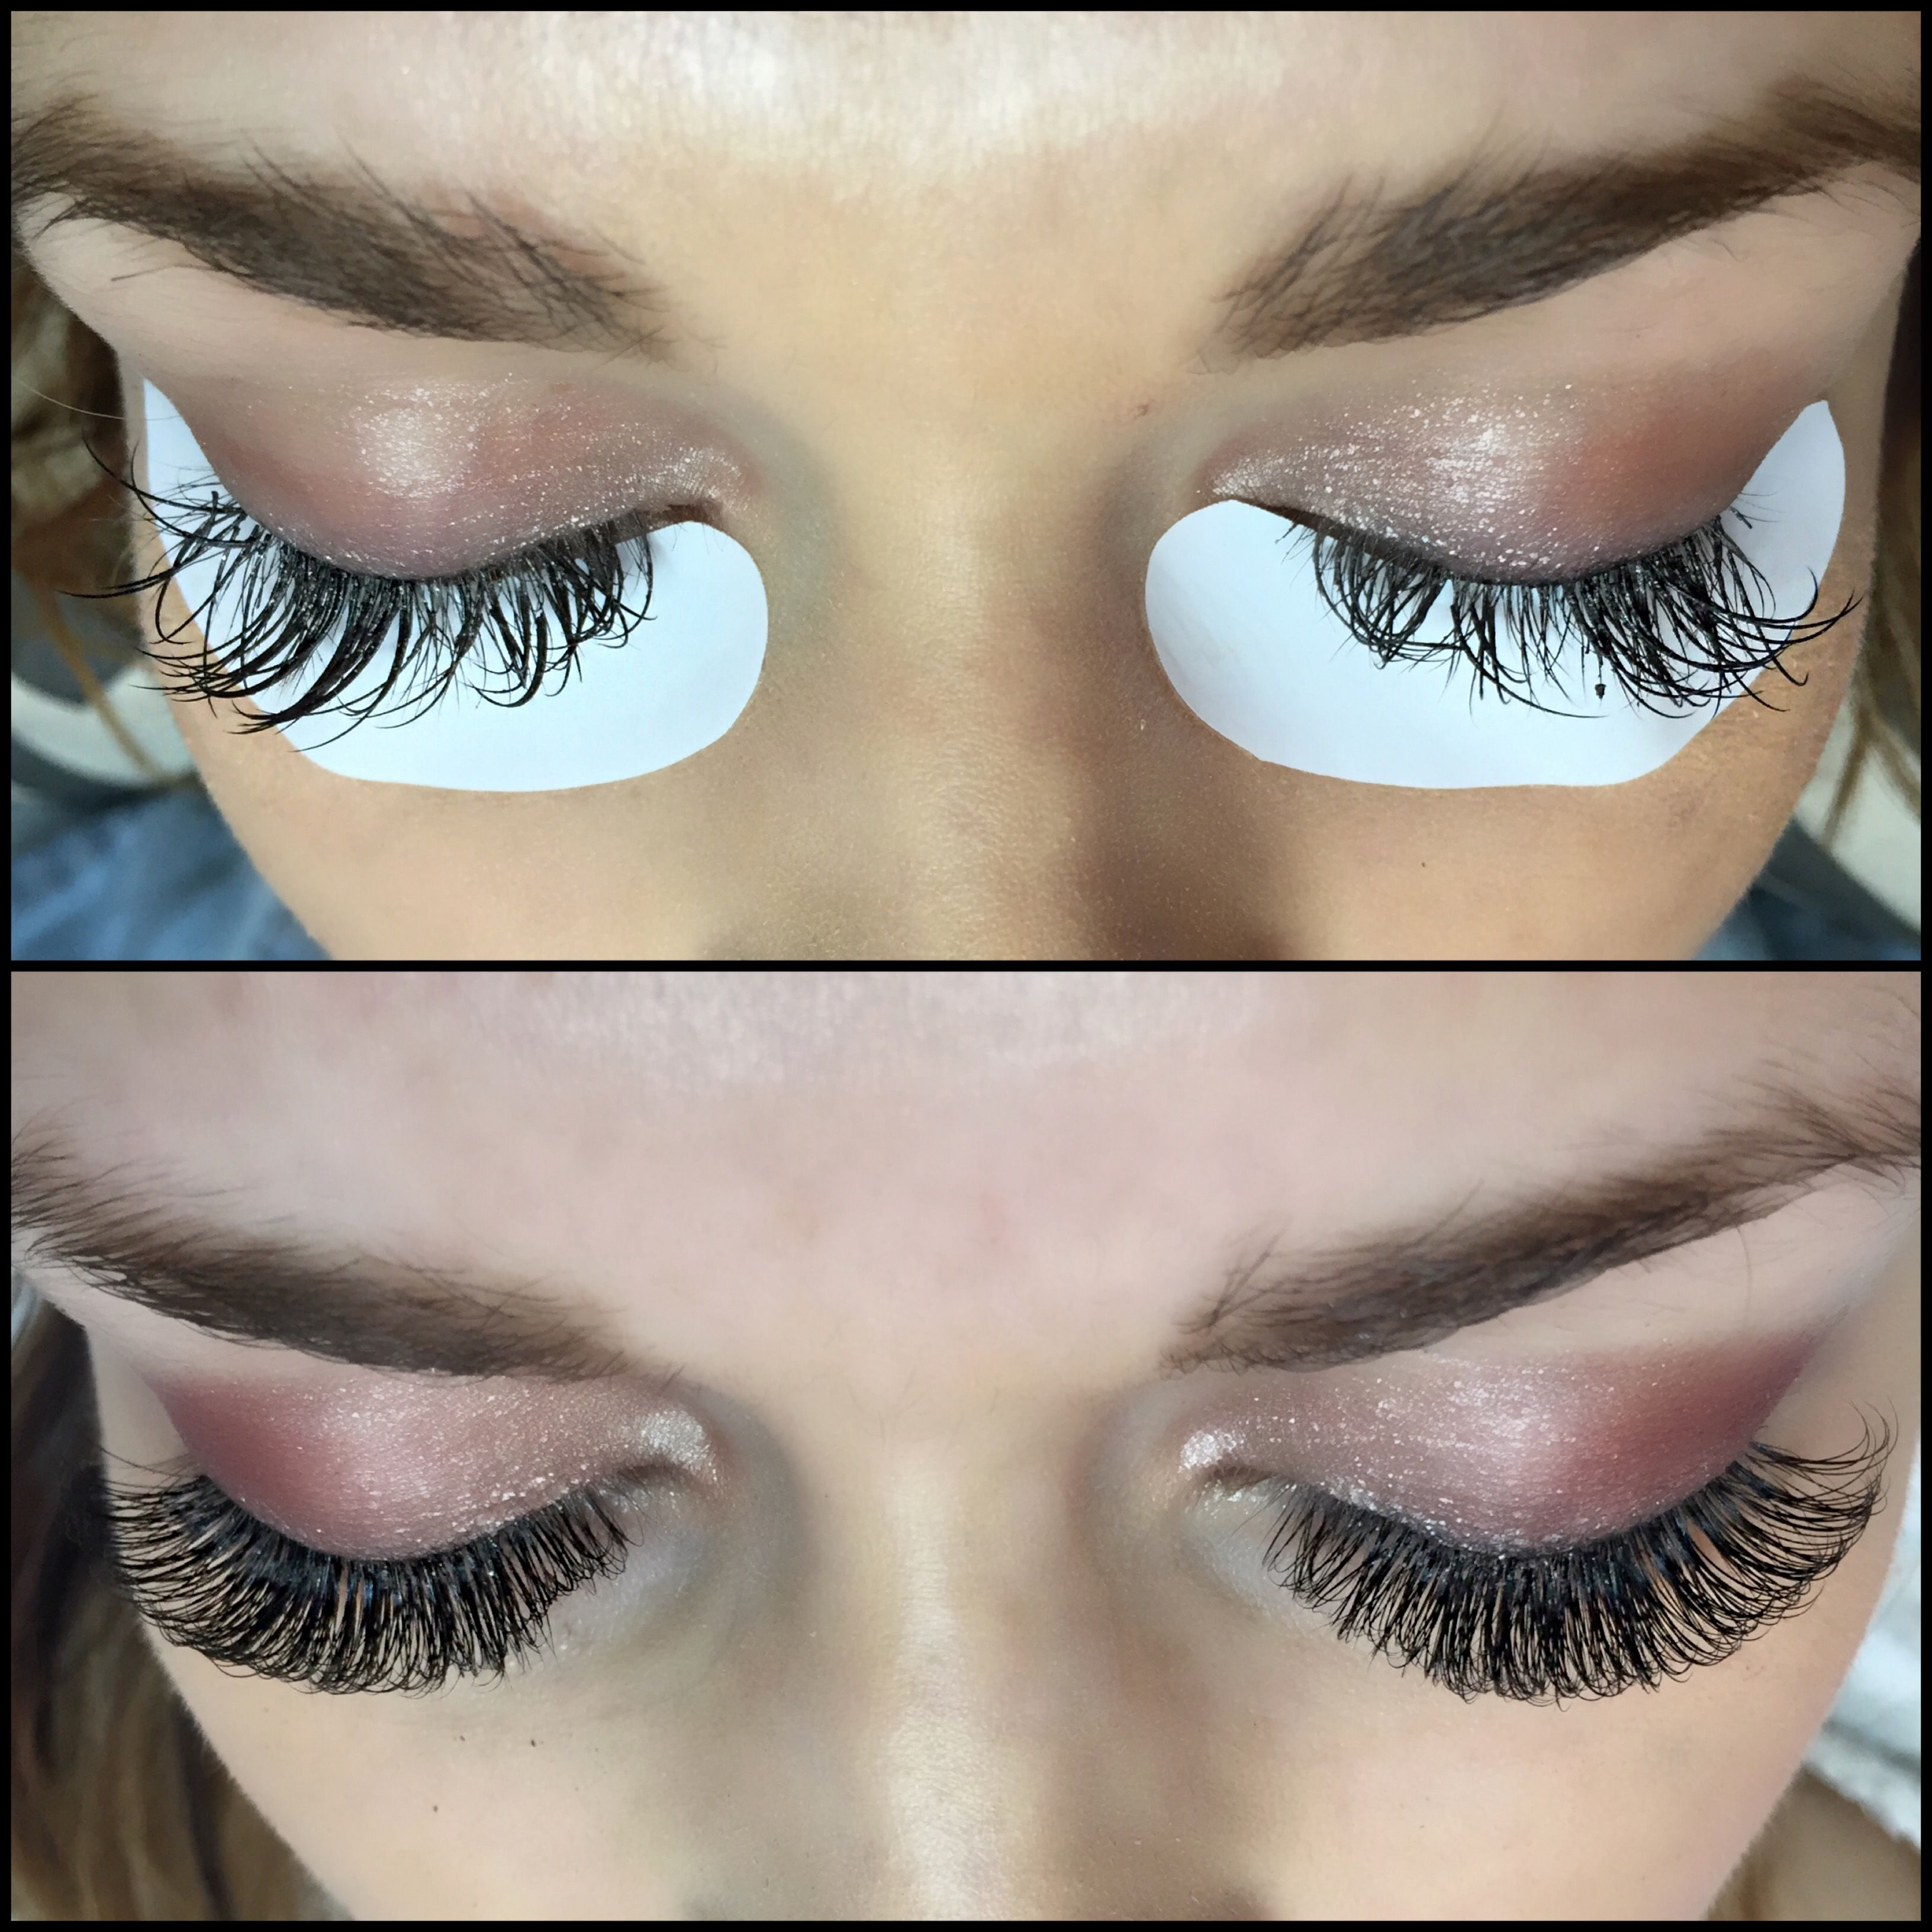 d9a55f33945 BEFORE AND AFTER! What an amazing improvement good eyelash extensions make  - http:/